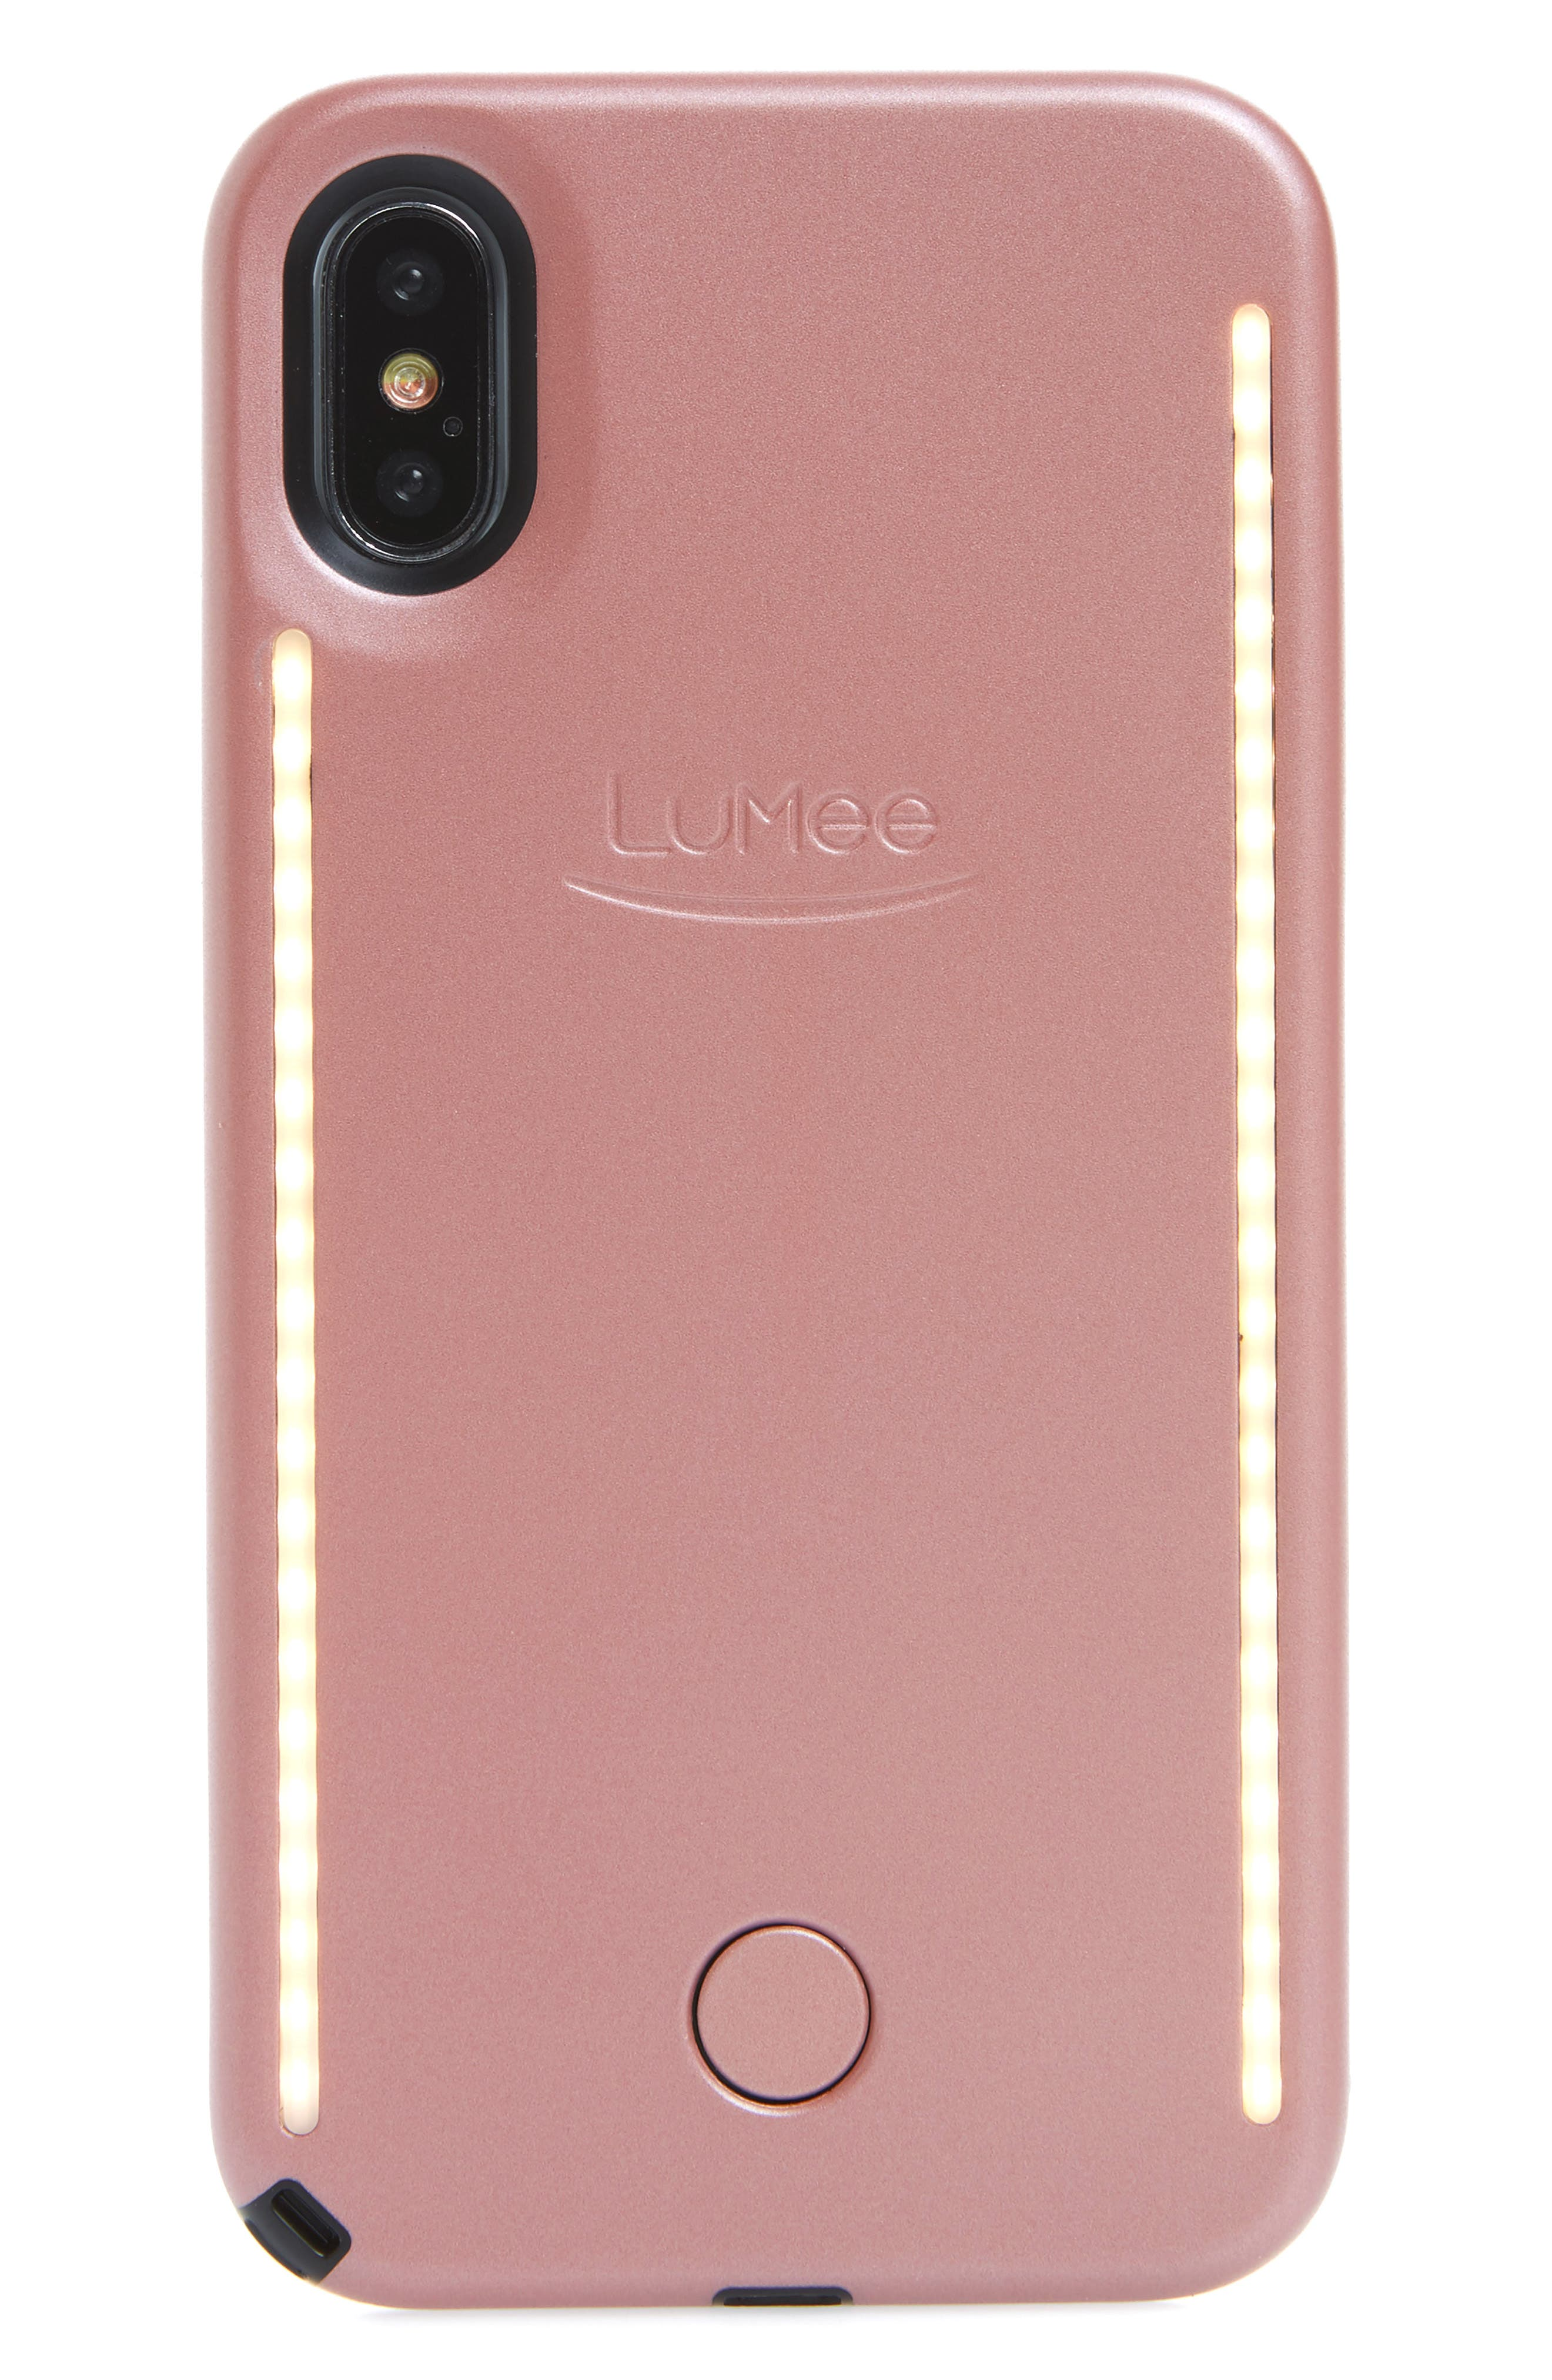 LuMee LED Lighted iPhone X Case